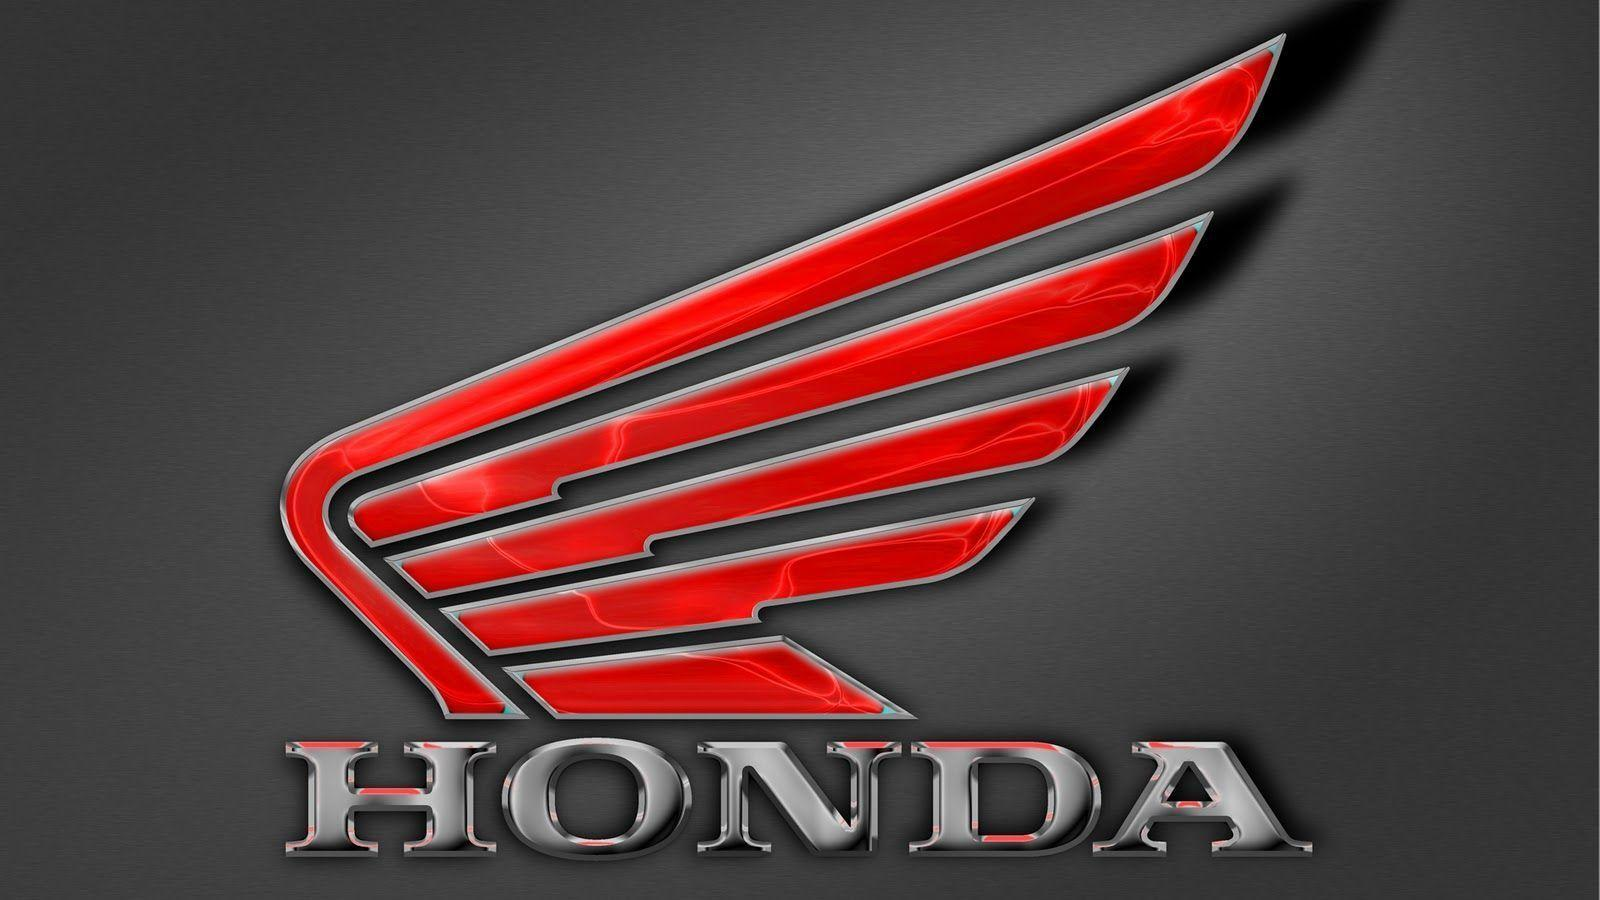 honda logo wallpapers wallpaper cave. Black Bedroom Furniture Sets. Home Design Ideas